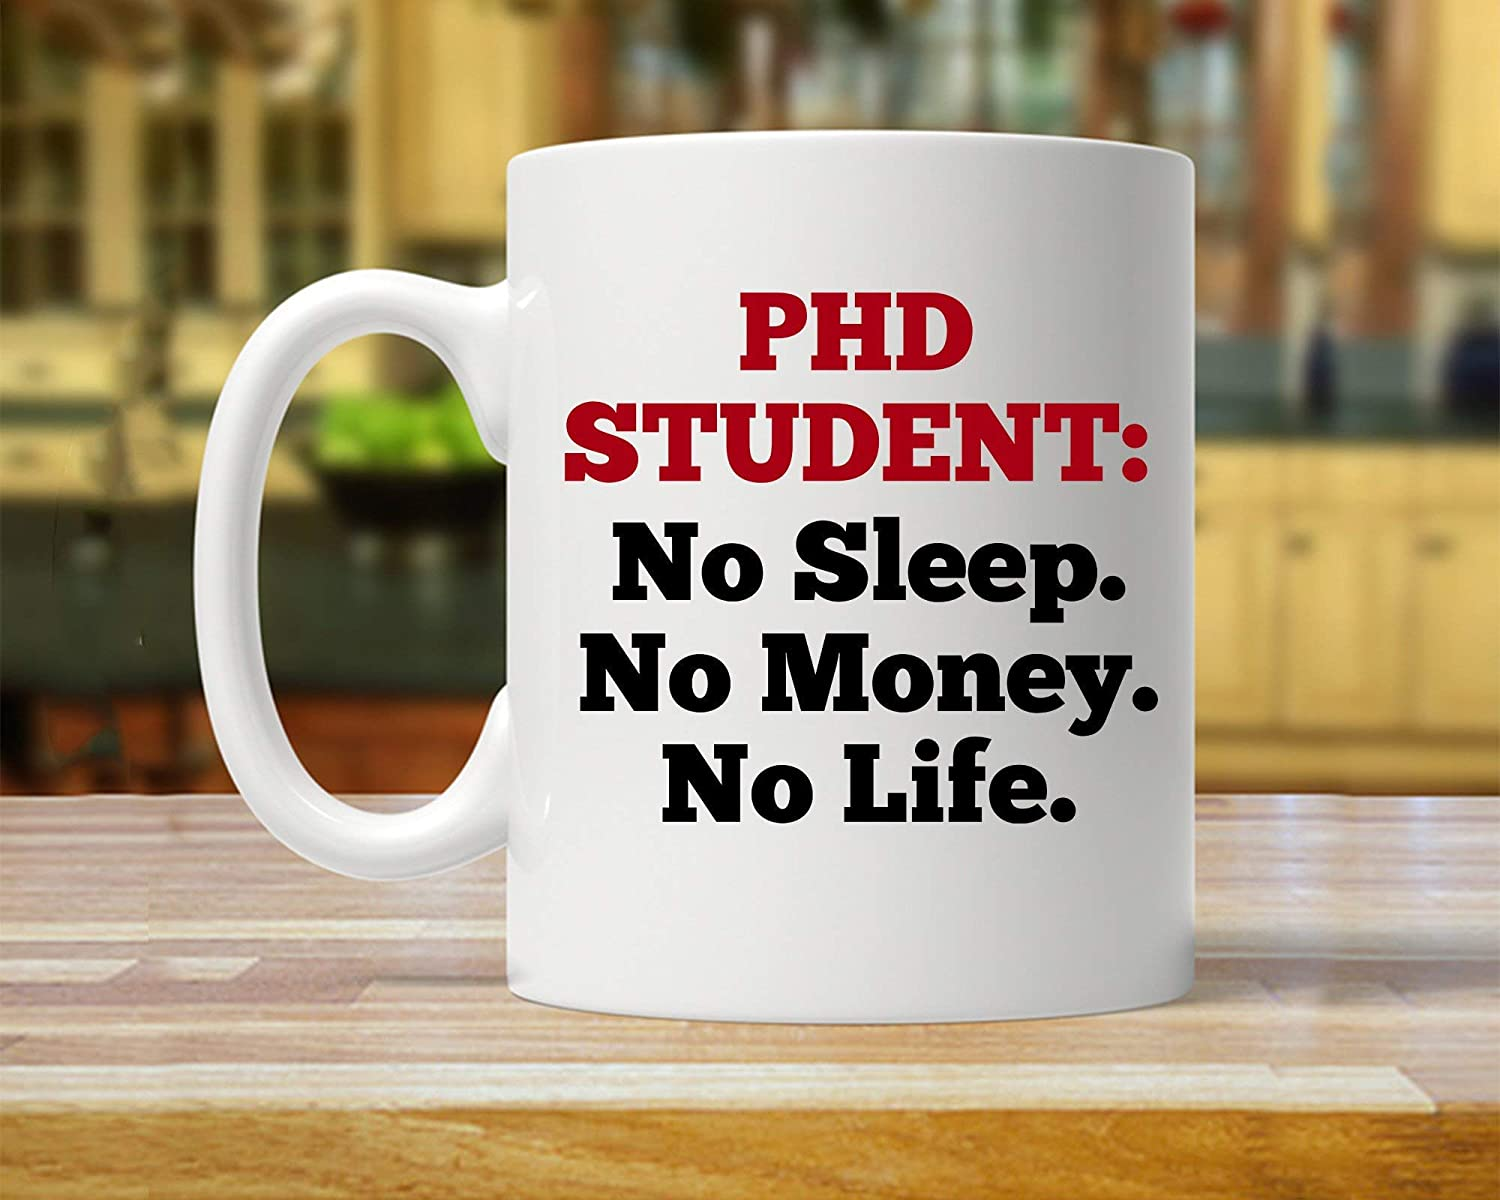 Amazon.com: Gift For Phd Student, Phd Student Gift, Phd Student Mug, Phd  Mug, Phd Student Gift Ideas, Phd Student Gifts, Mugs For Phd Student, Phd  Gift,Thanksgiving Day Gifts,Christmas Gift-11 Oz: Kitchen &